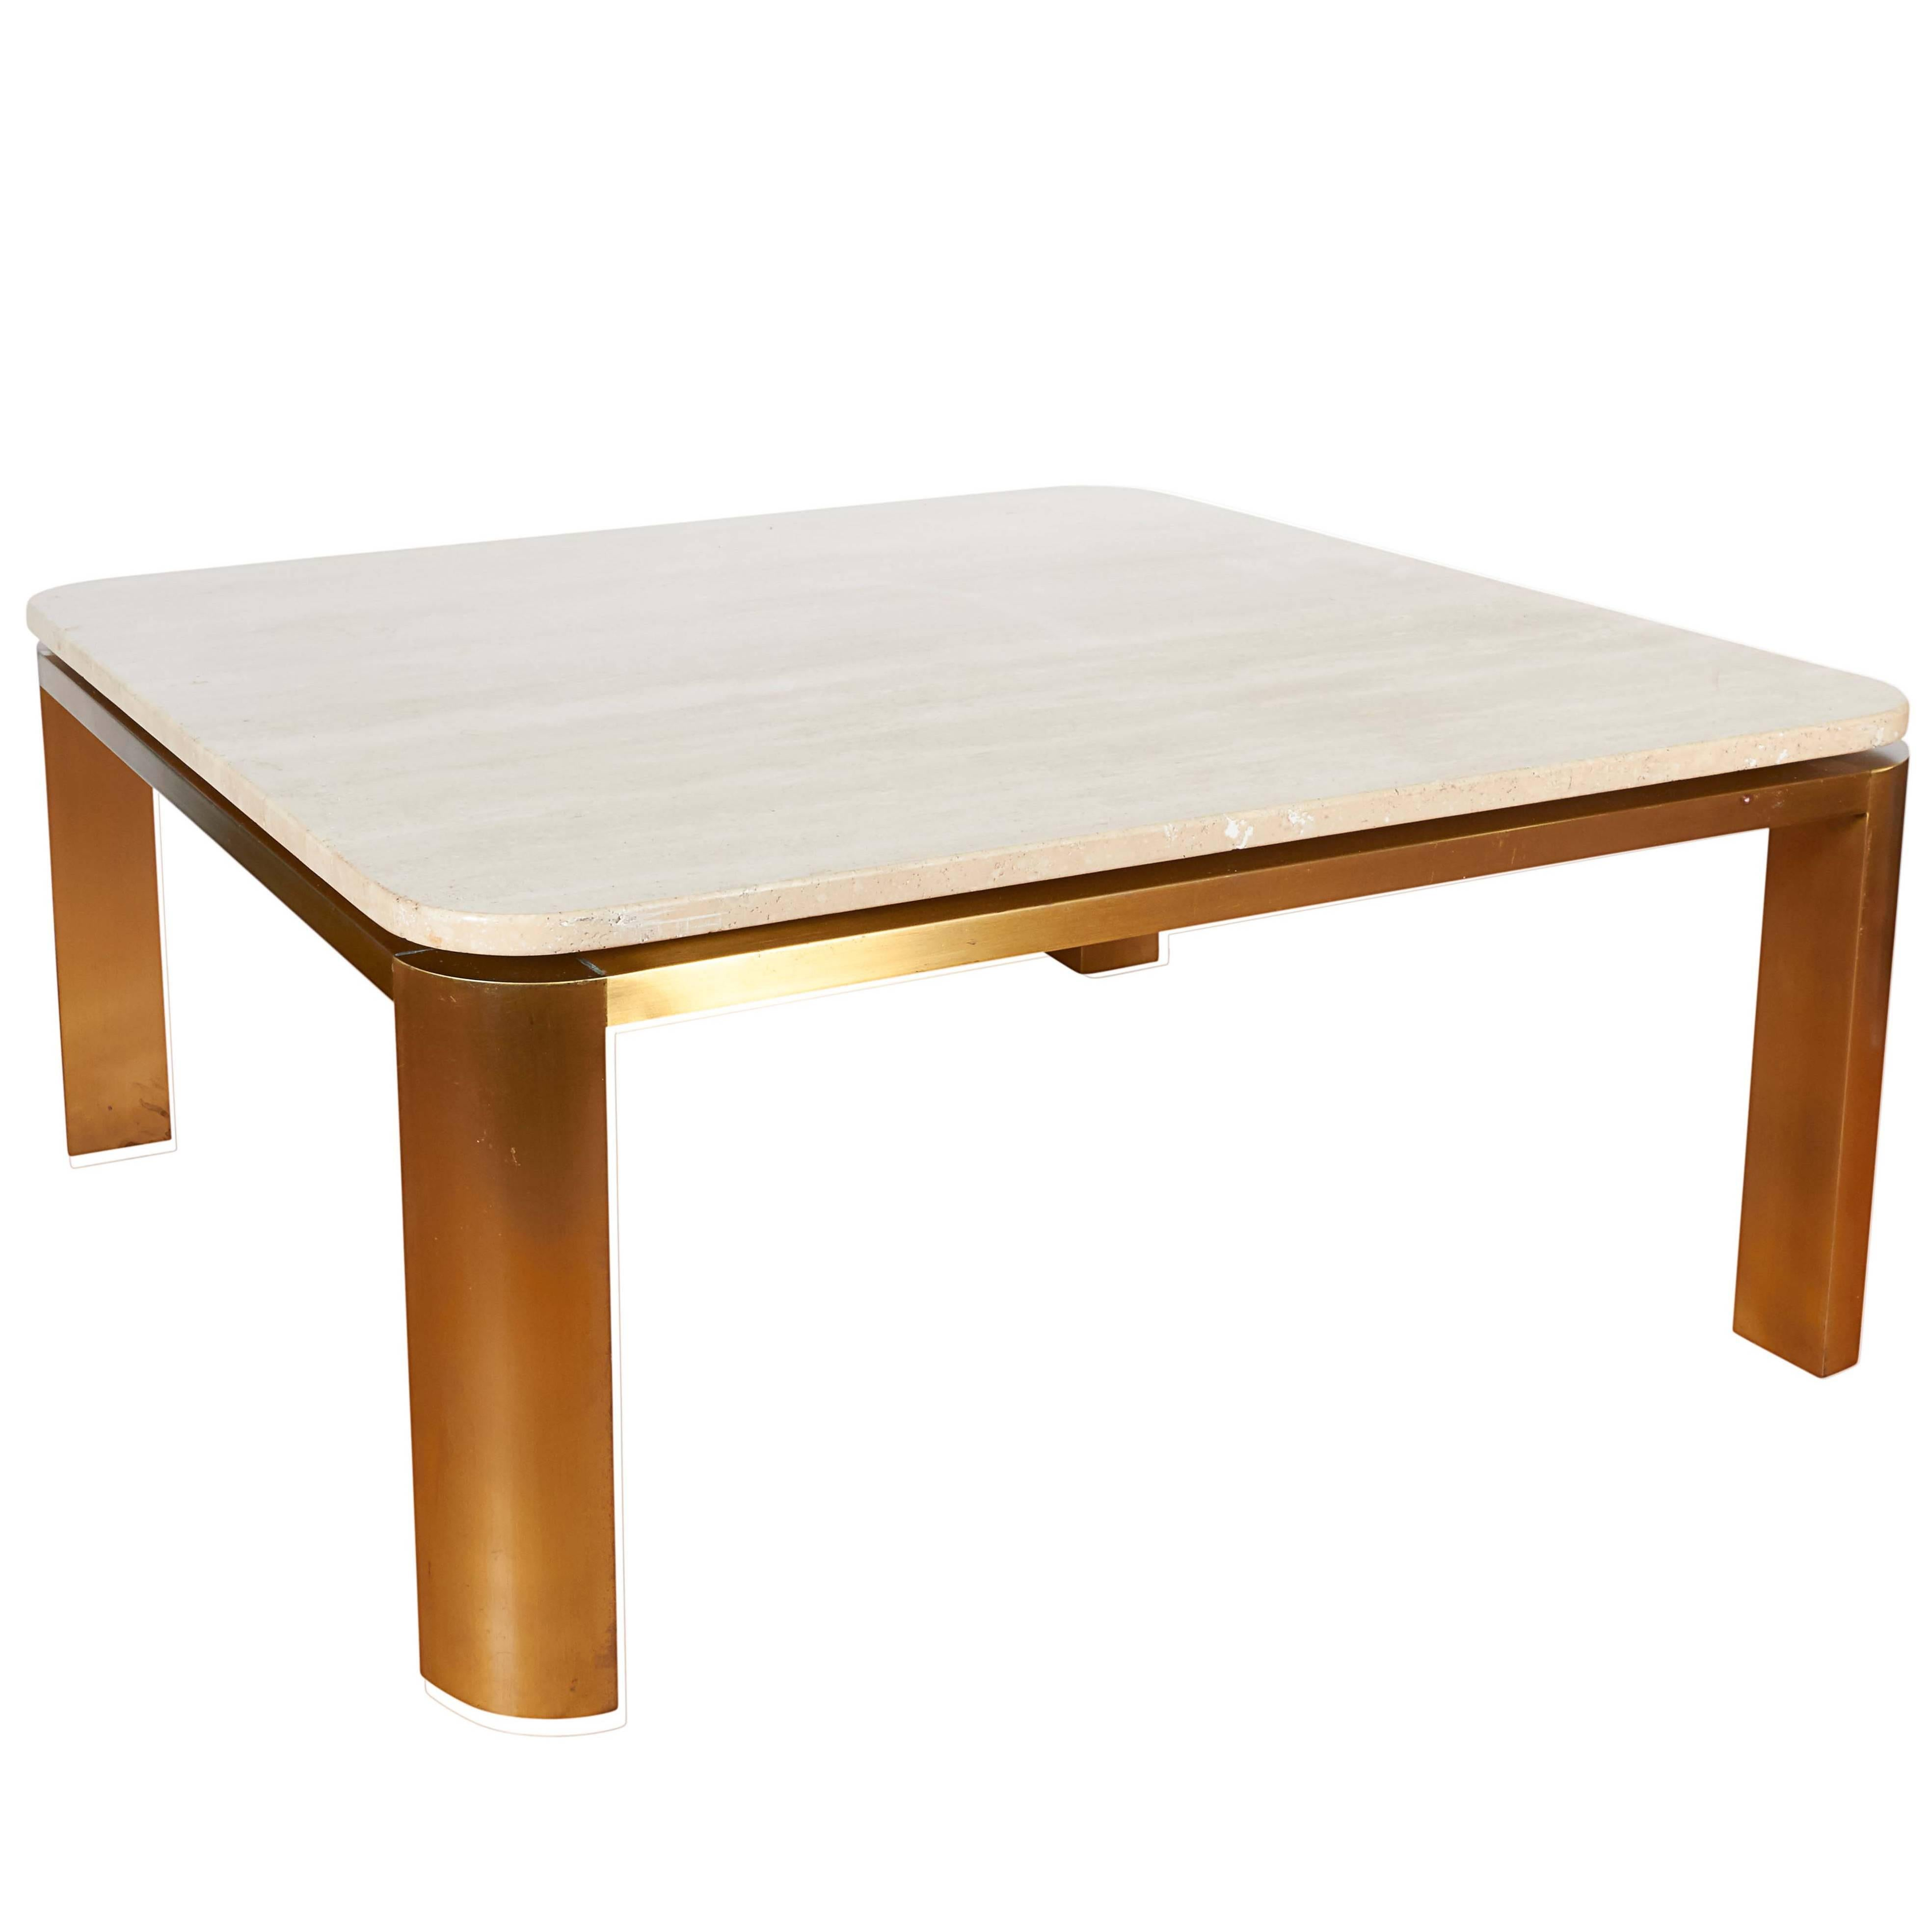 Midcentury Waterfall Coffee Table By Leon Rosen For Pace For